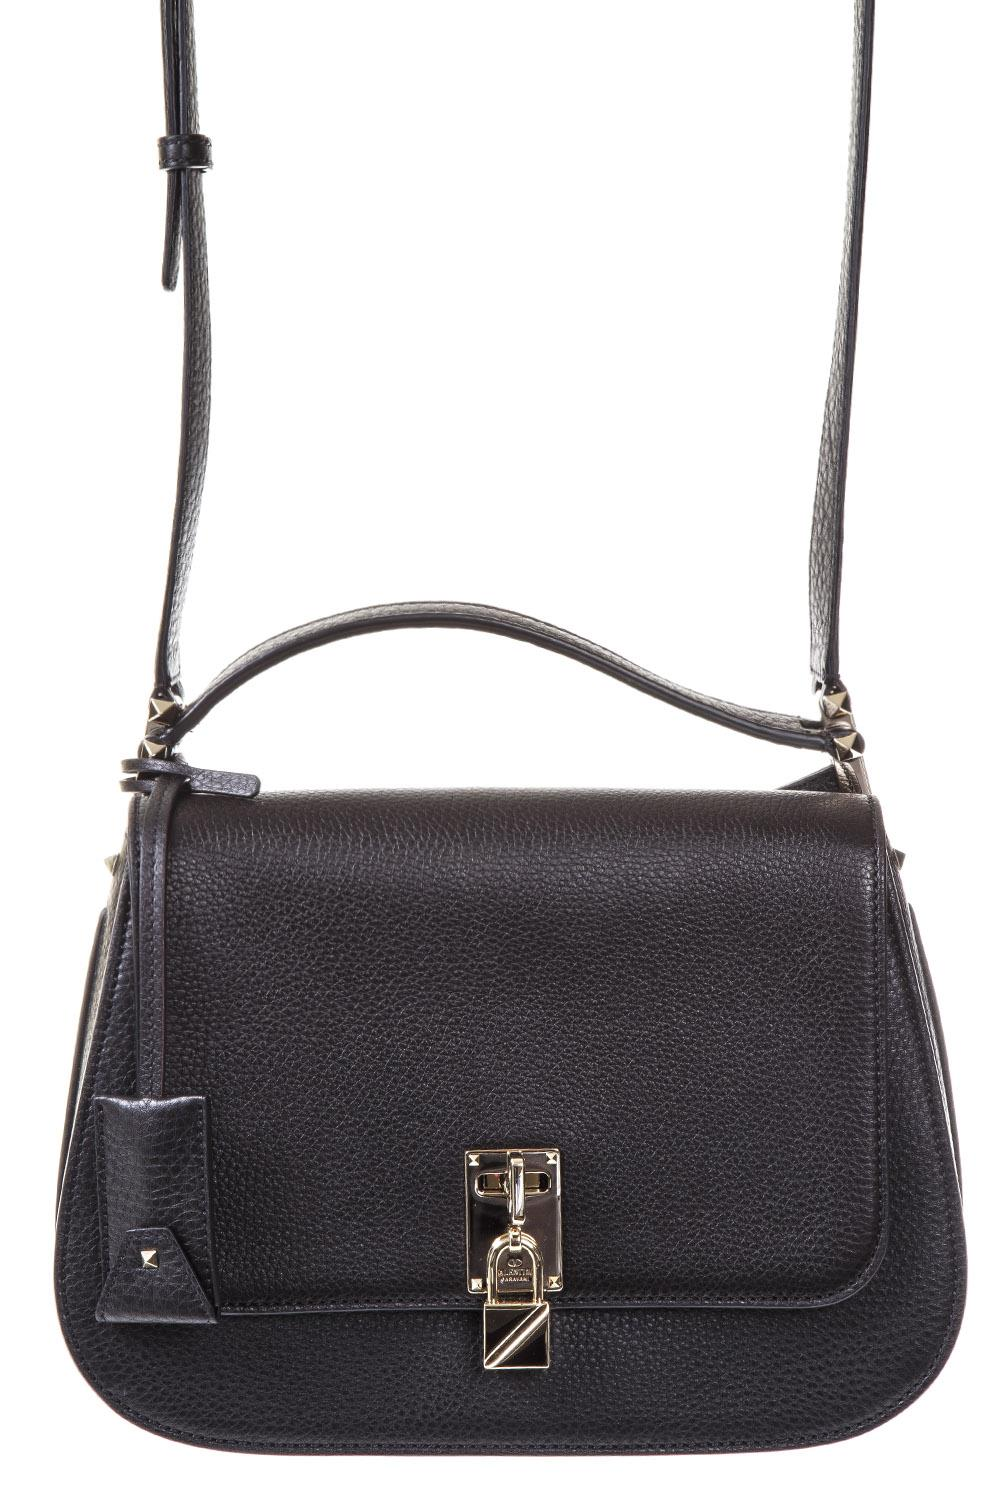 Valentino Garavani Joylock Bag in Black